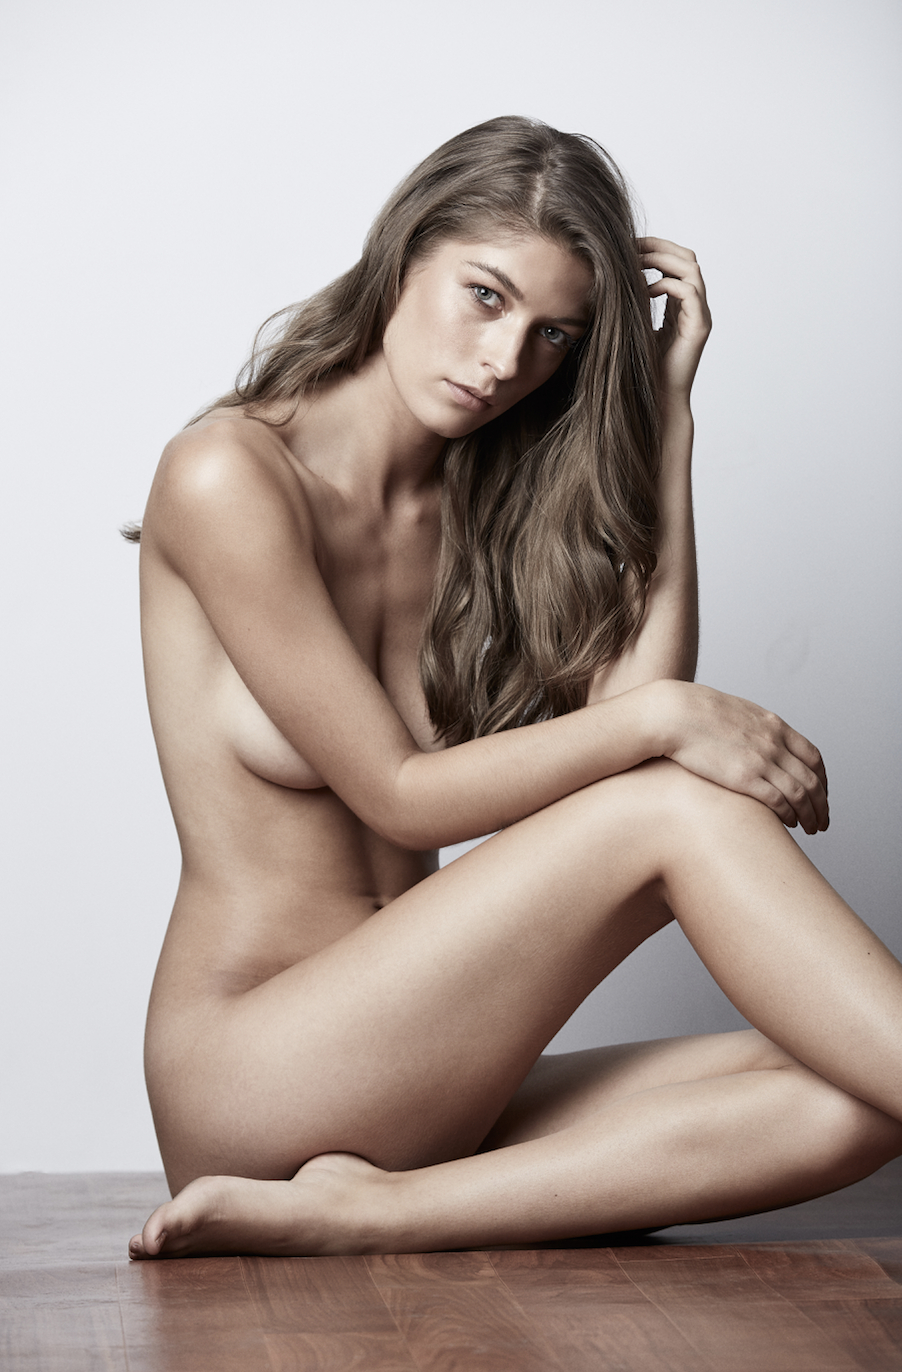 Naomi Holt naked (54 pictures), pics Sideboobs, Instagram, legs 2016